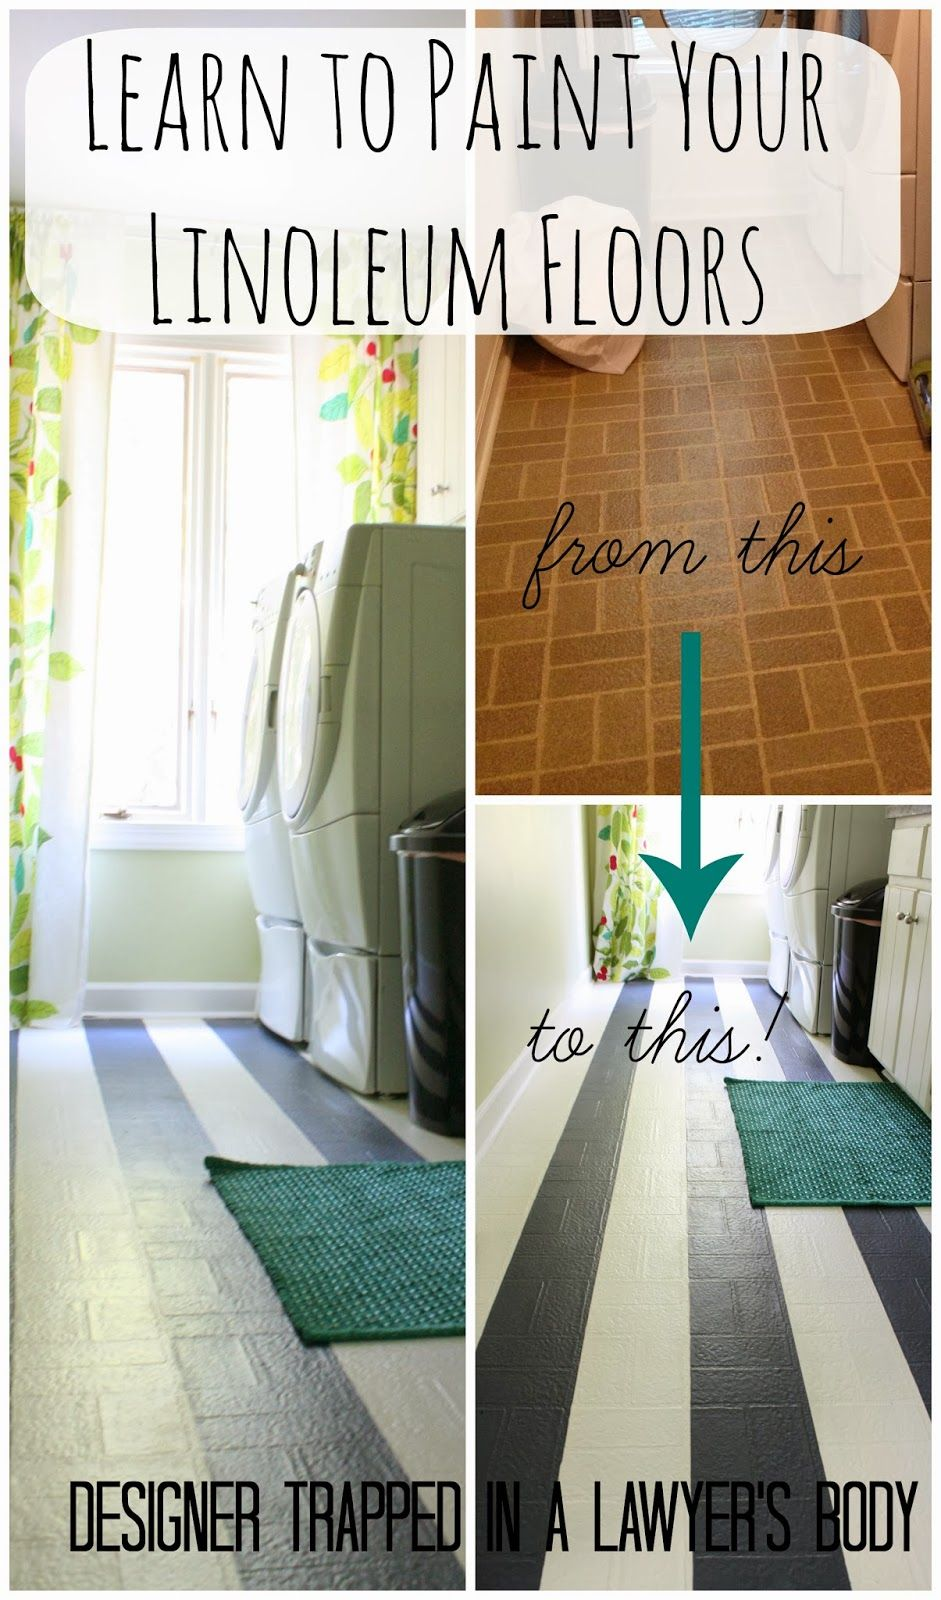 Designer Trapped in a Lawyer's Body: How to Paint Your Linoleum Floors {Yes, YOU CAN DO THAT!}